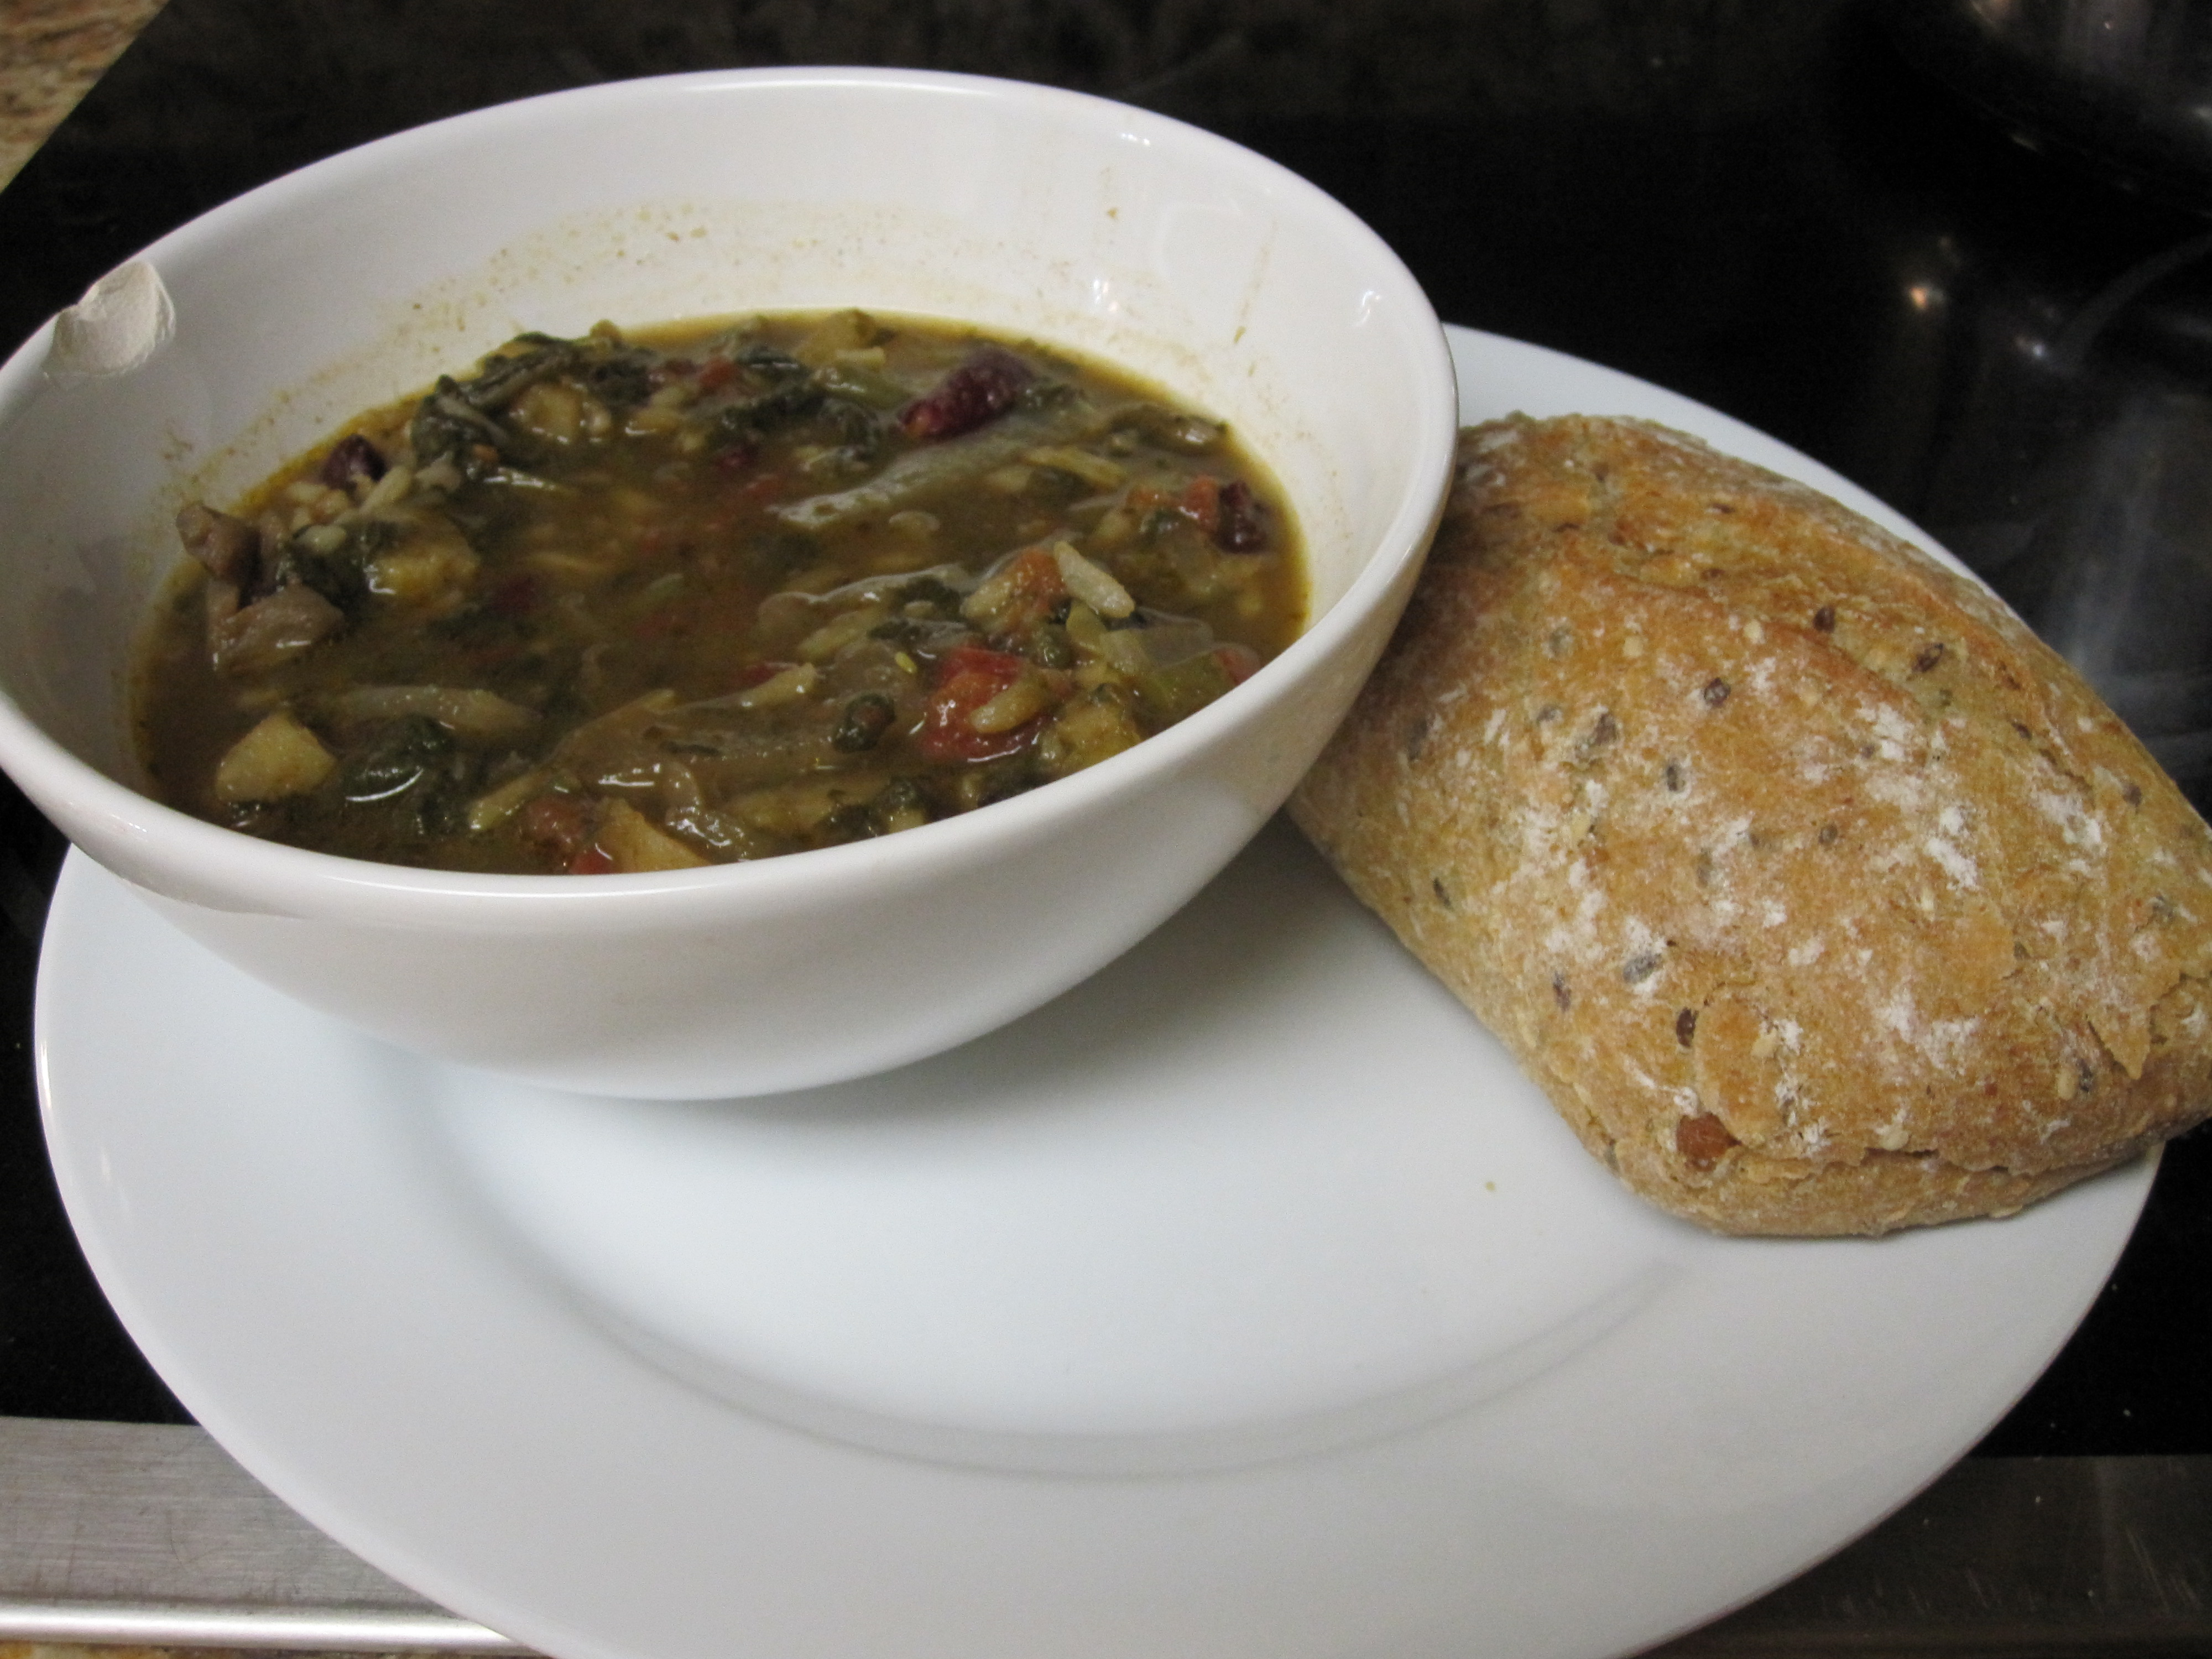 Sunday Vegetable Rice Soup